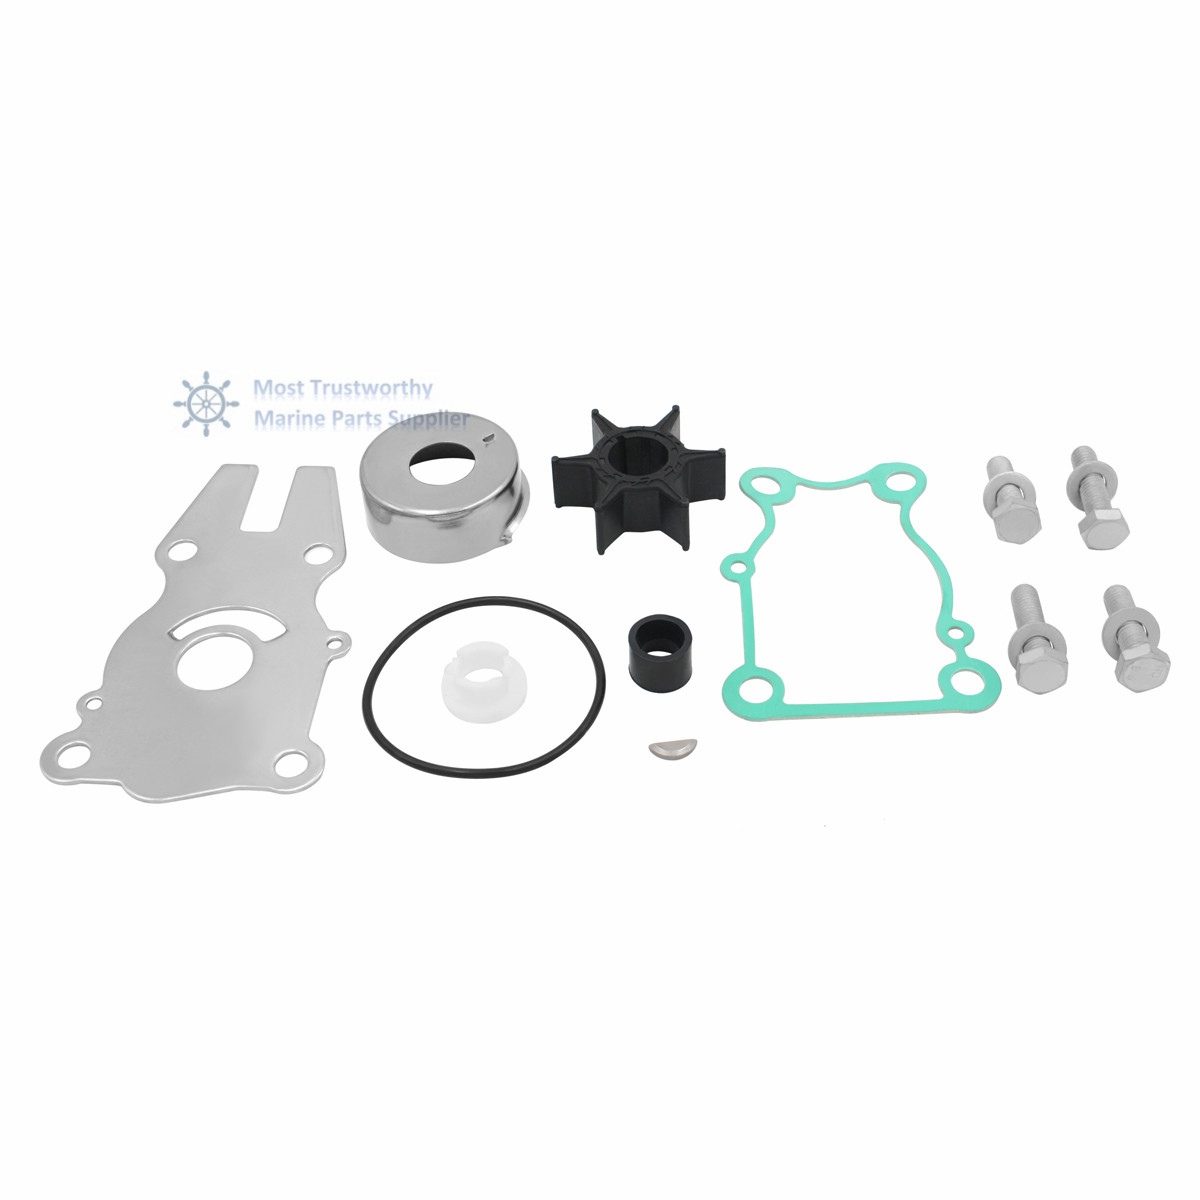 Water-Pump-Impeller-Repair-Kit-for-yamaha-F40-F50-F60hp-Outboard-63D-W0078-01-00